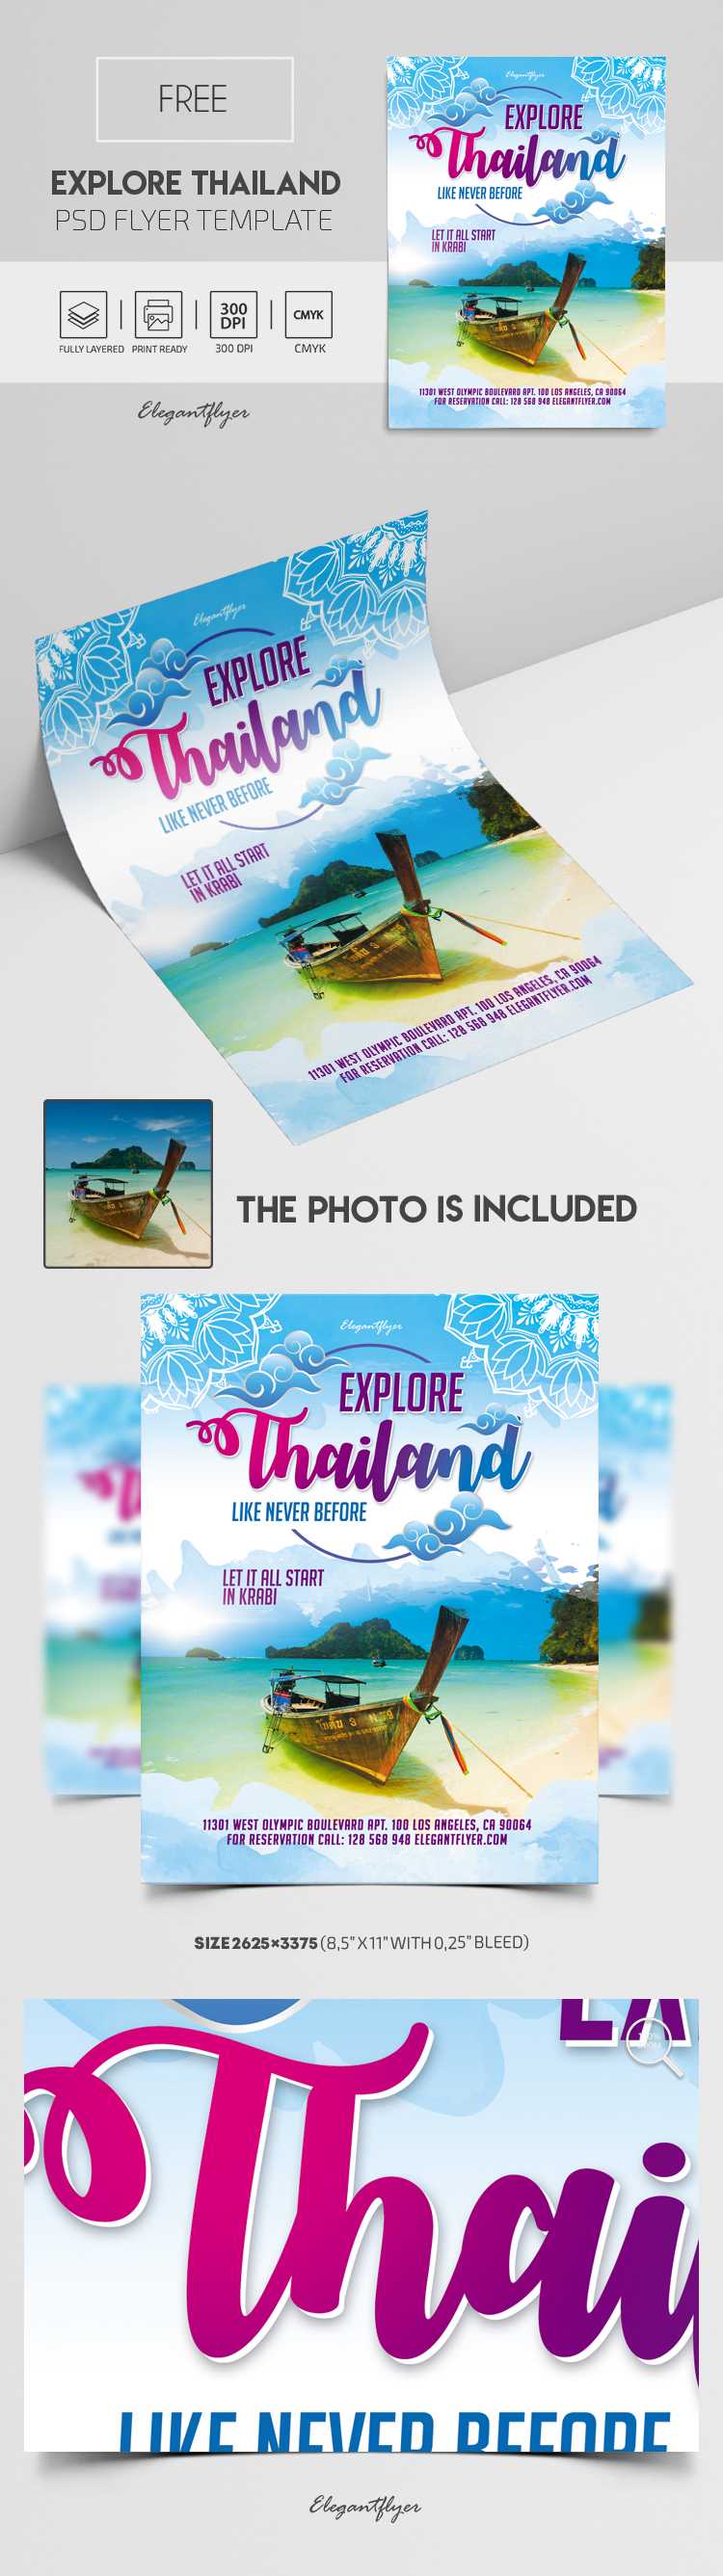 Explore Thailand. Like Never Before. Let it All Start in Krabi – Free PSD Flyer Template